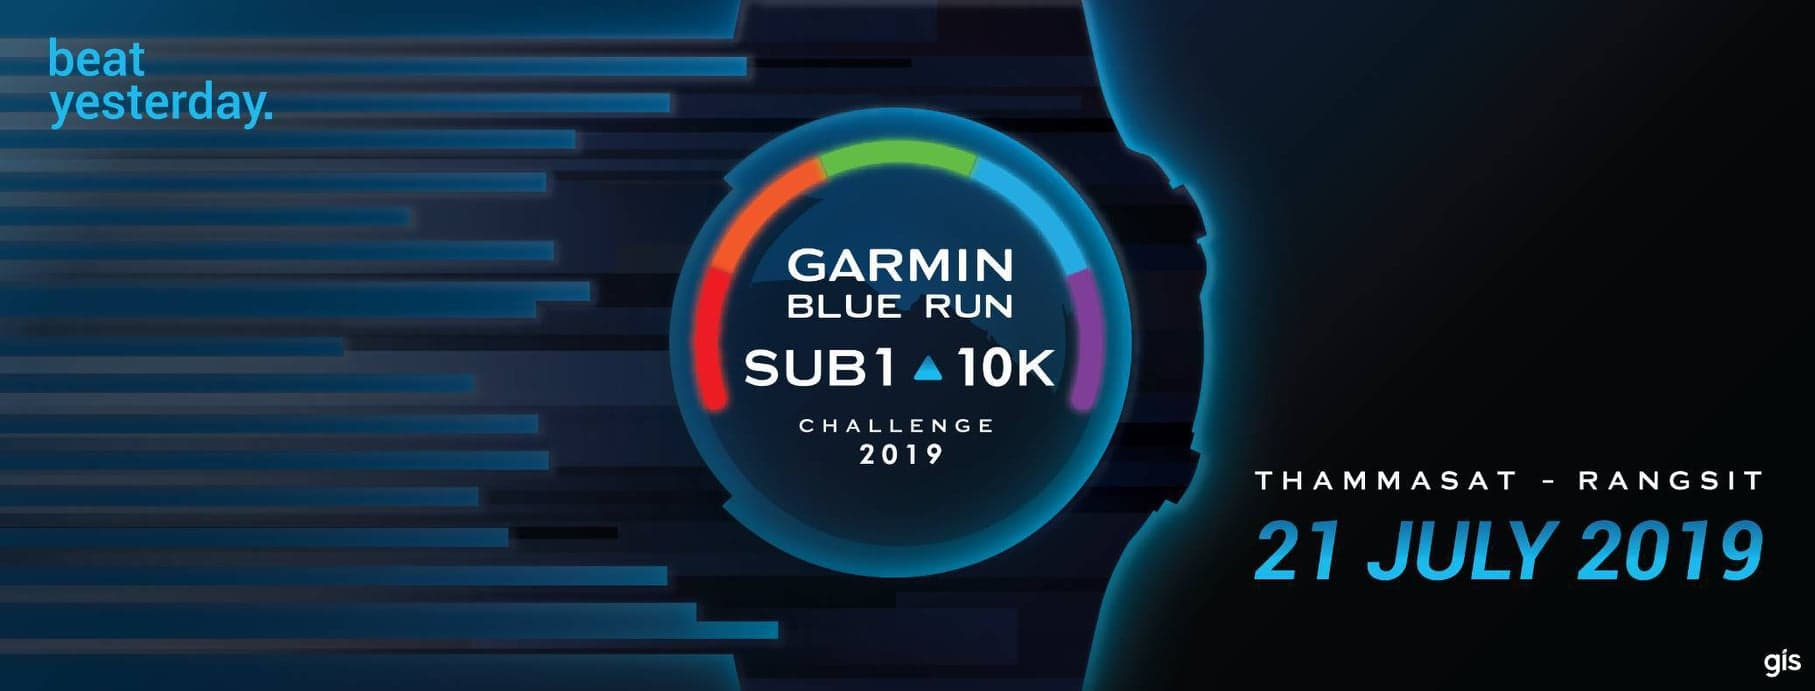 Garmin Blue Run 2019